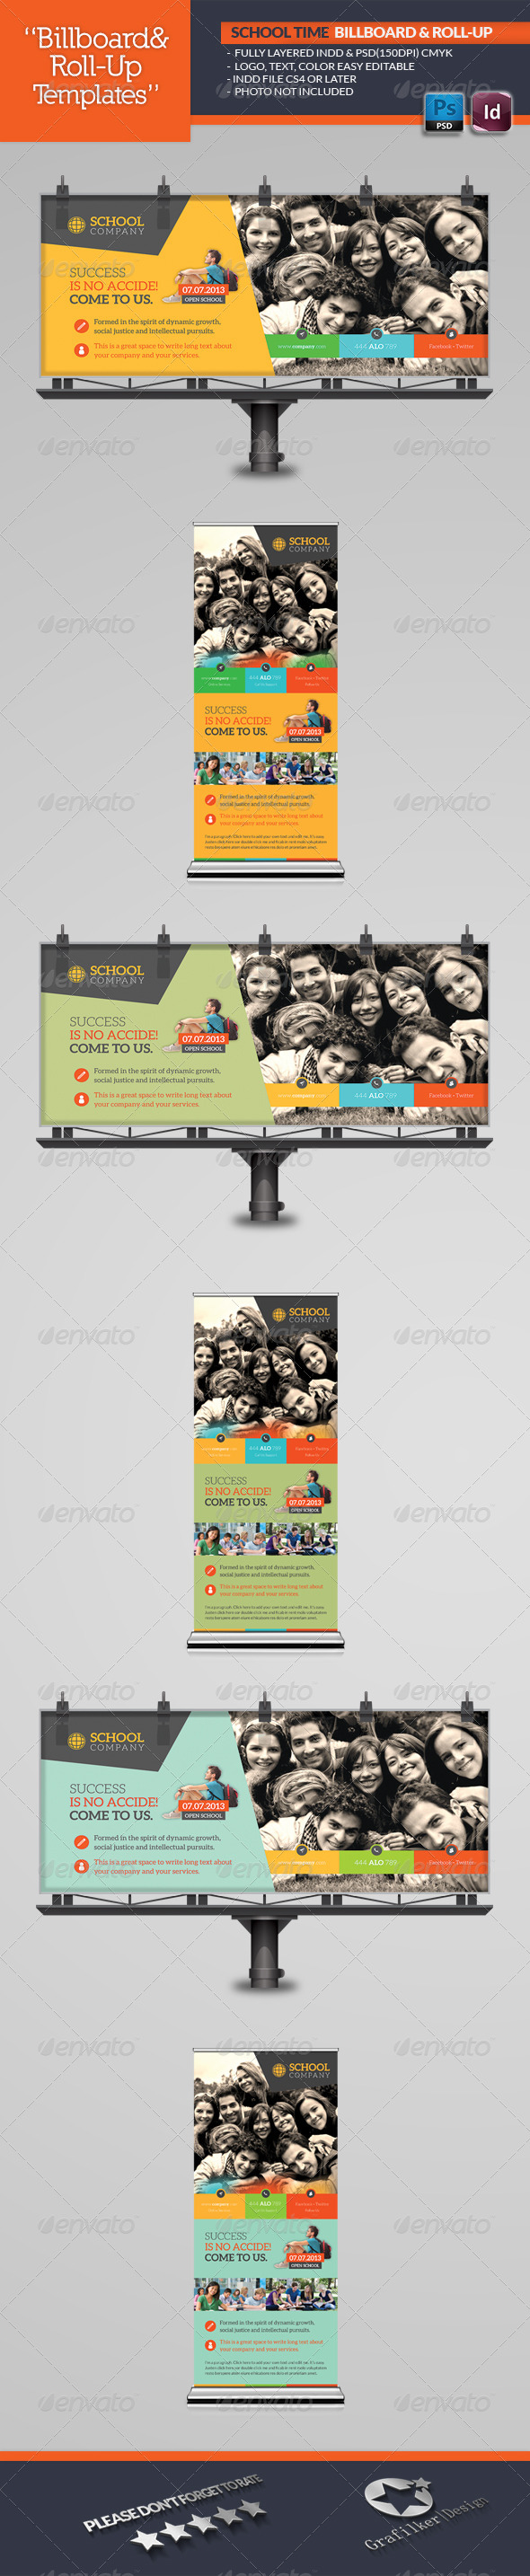 School Time Billboard Roll-Up Template - Signage Print Templates